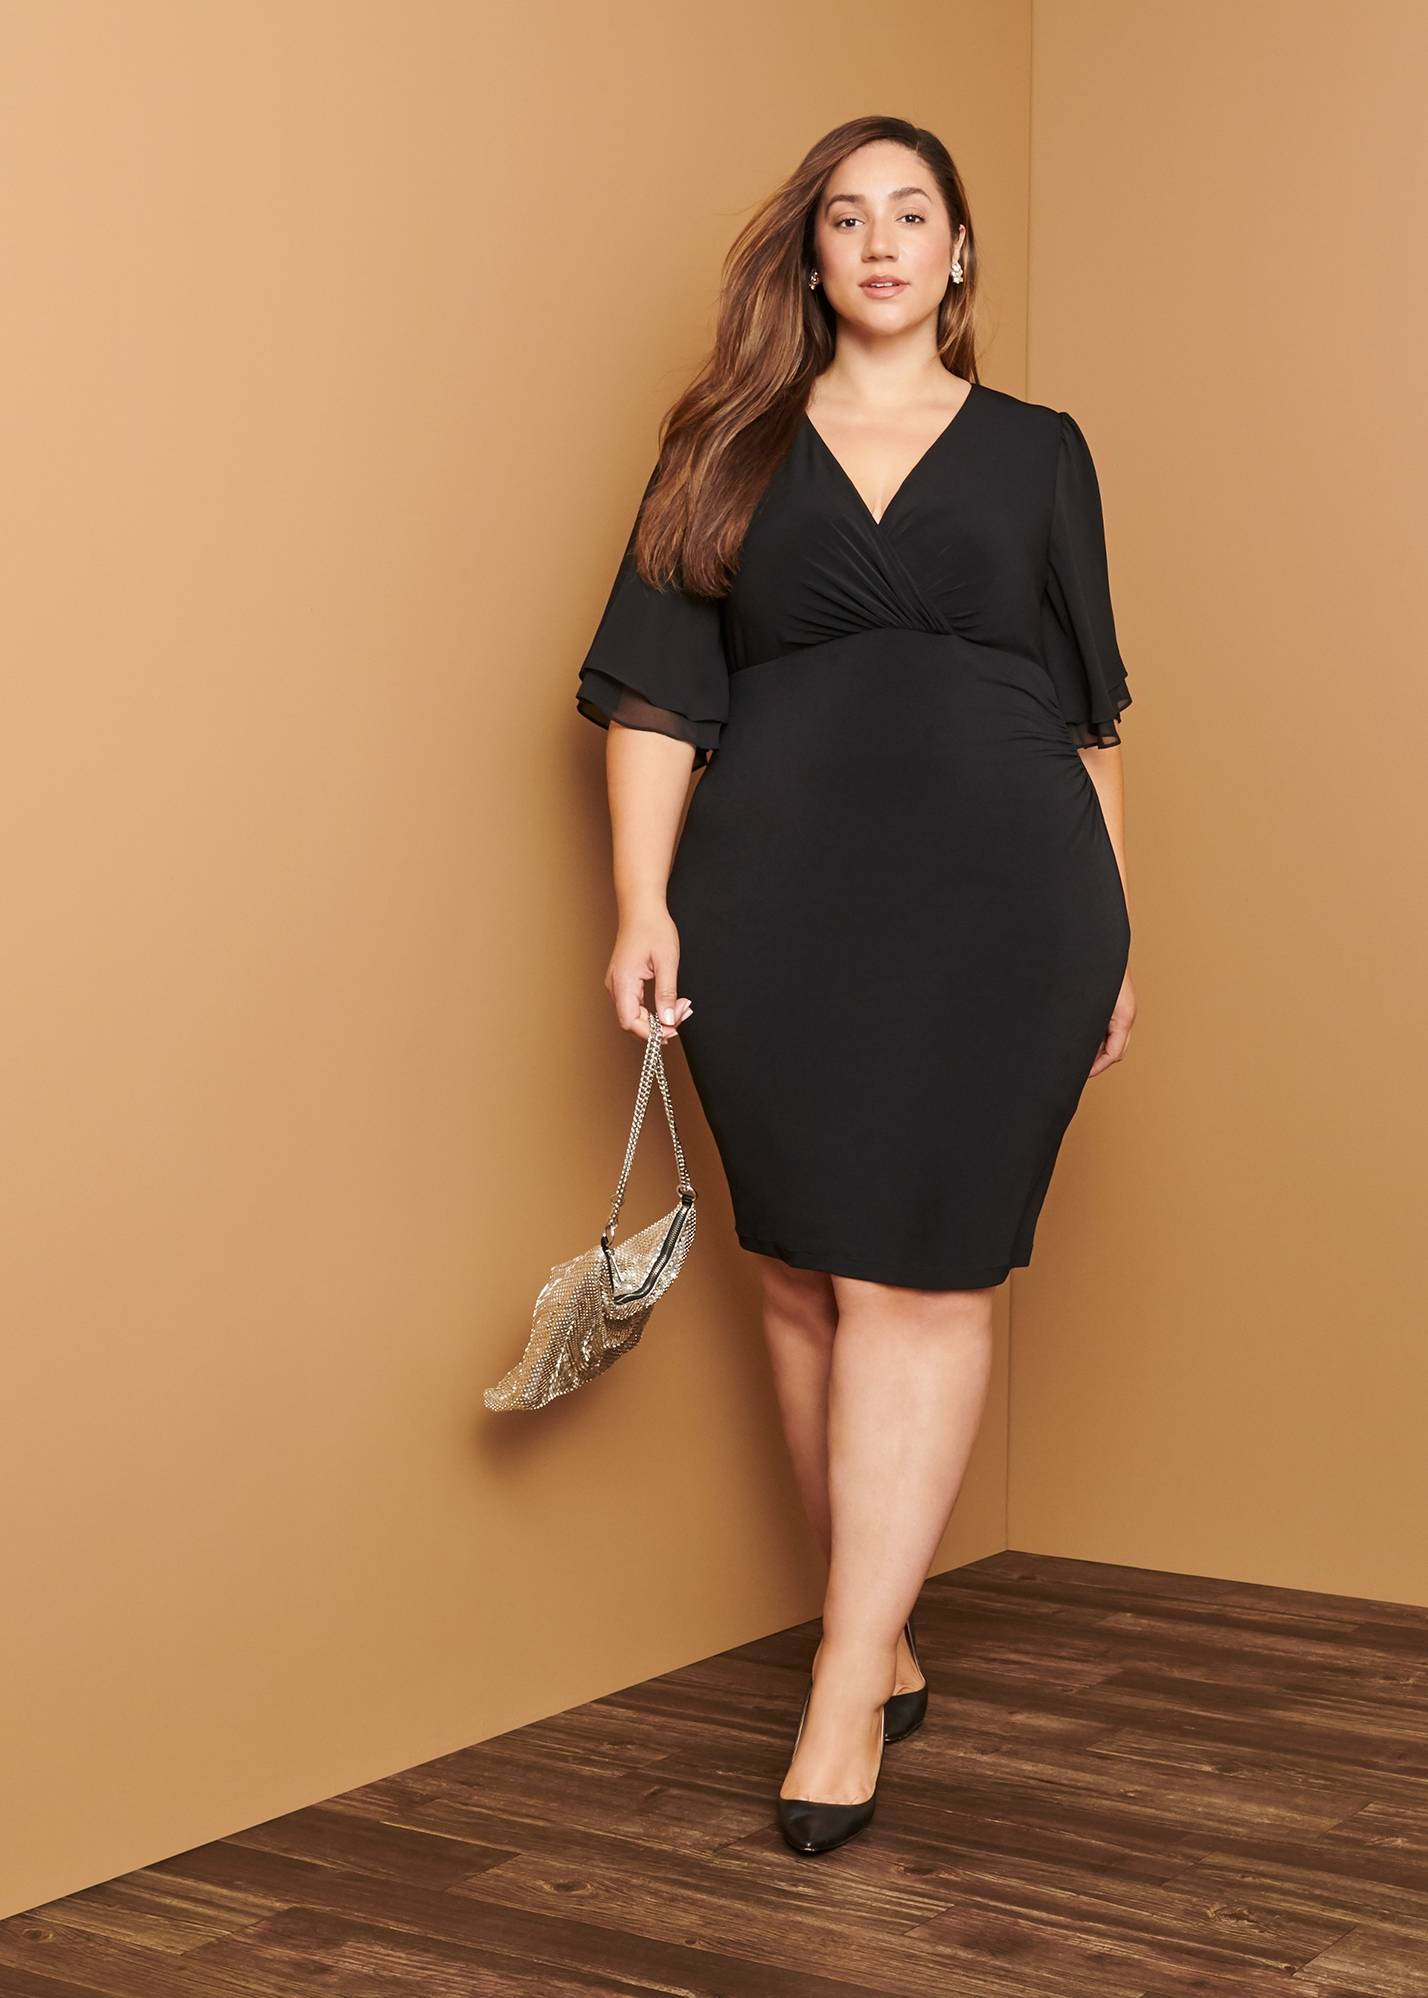 plus size woman in black bat wing sleeve cocktail dress on day to night connected apparel blog